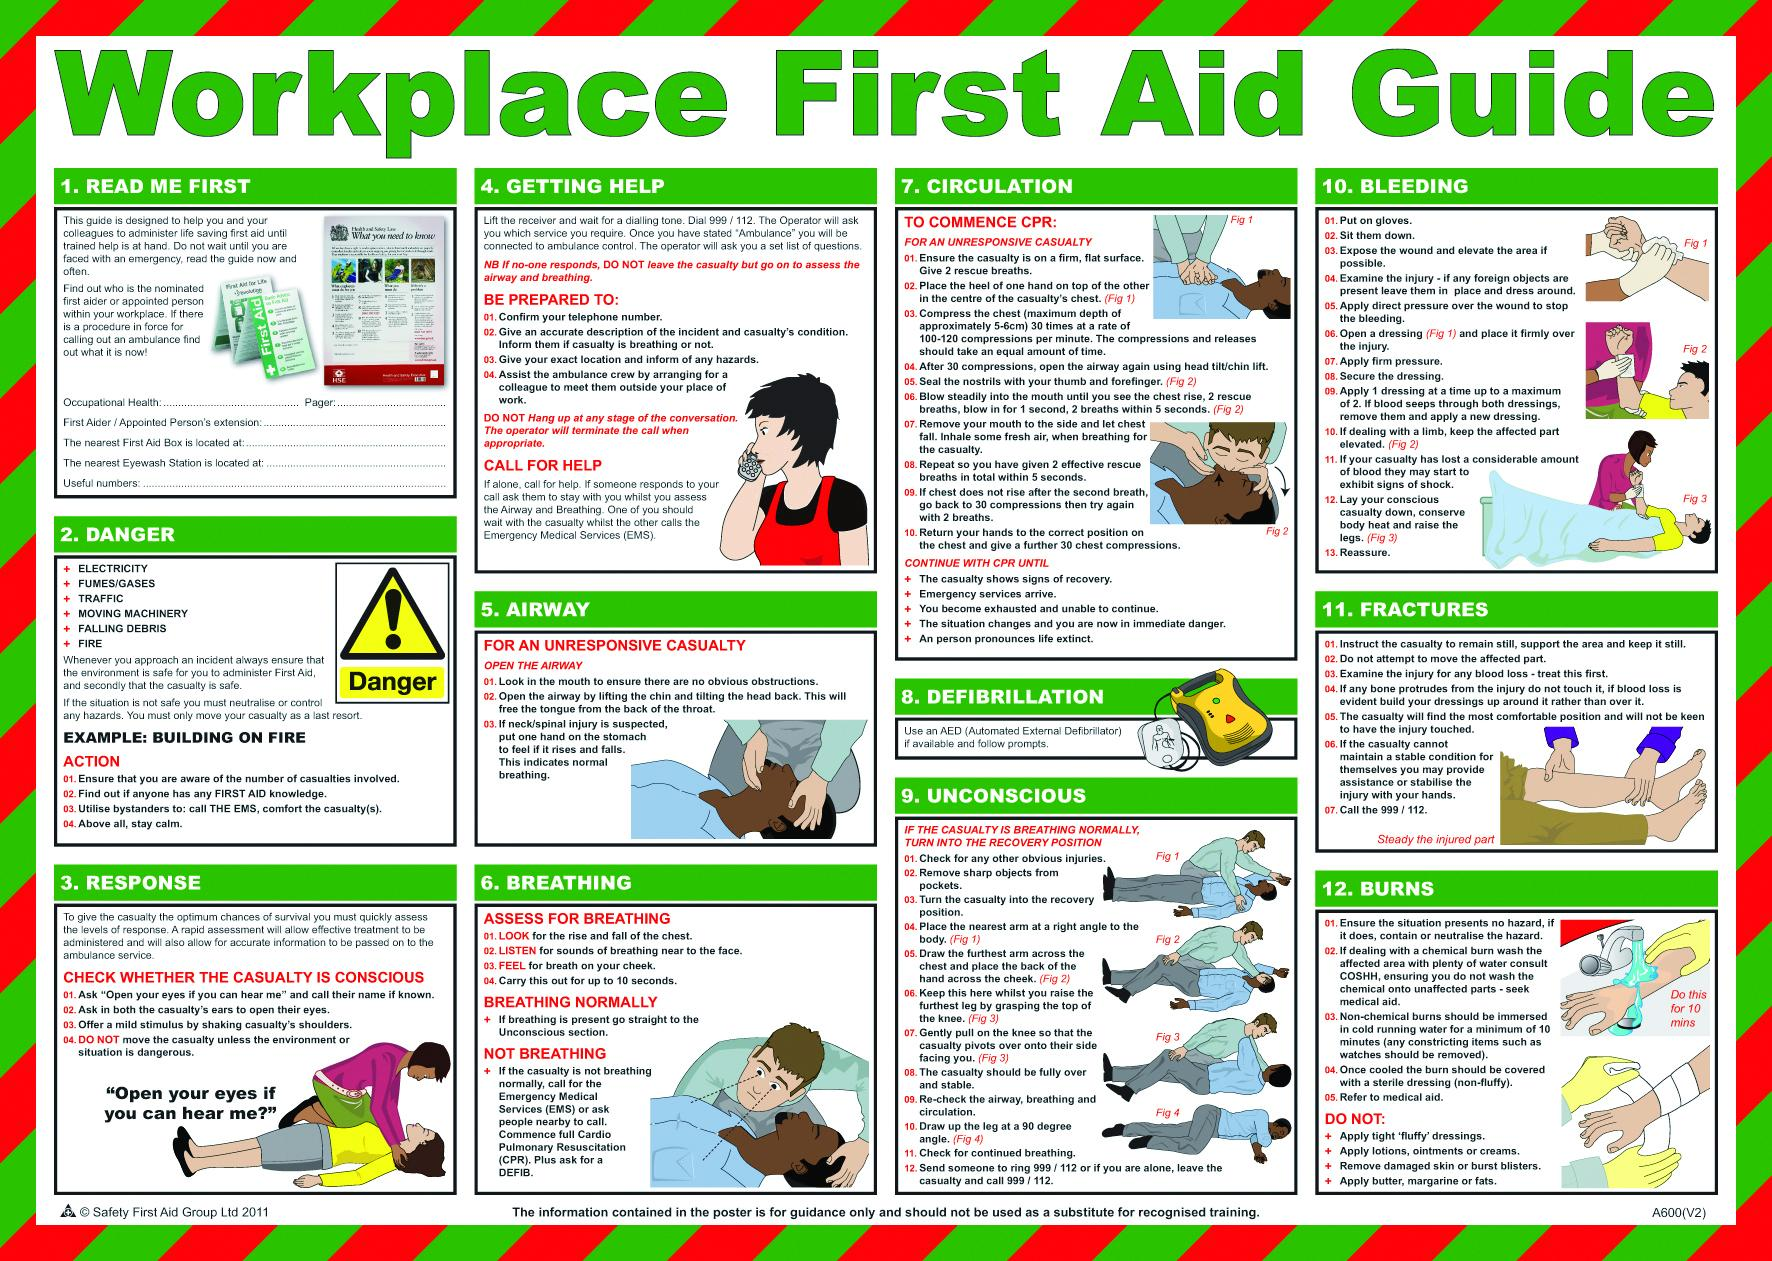 First Aid: Principles and Methods